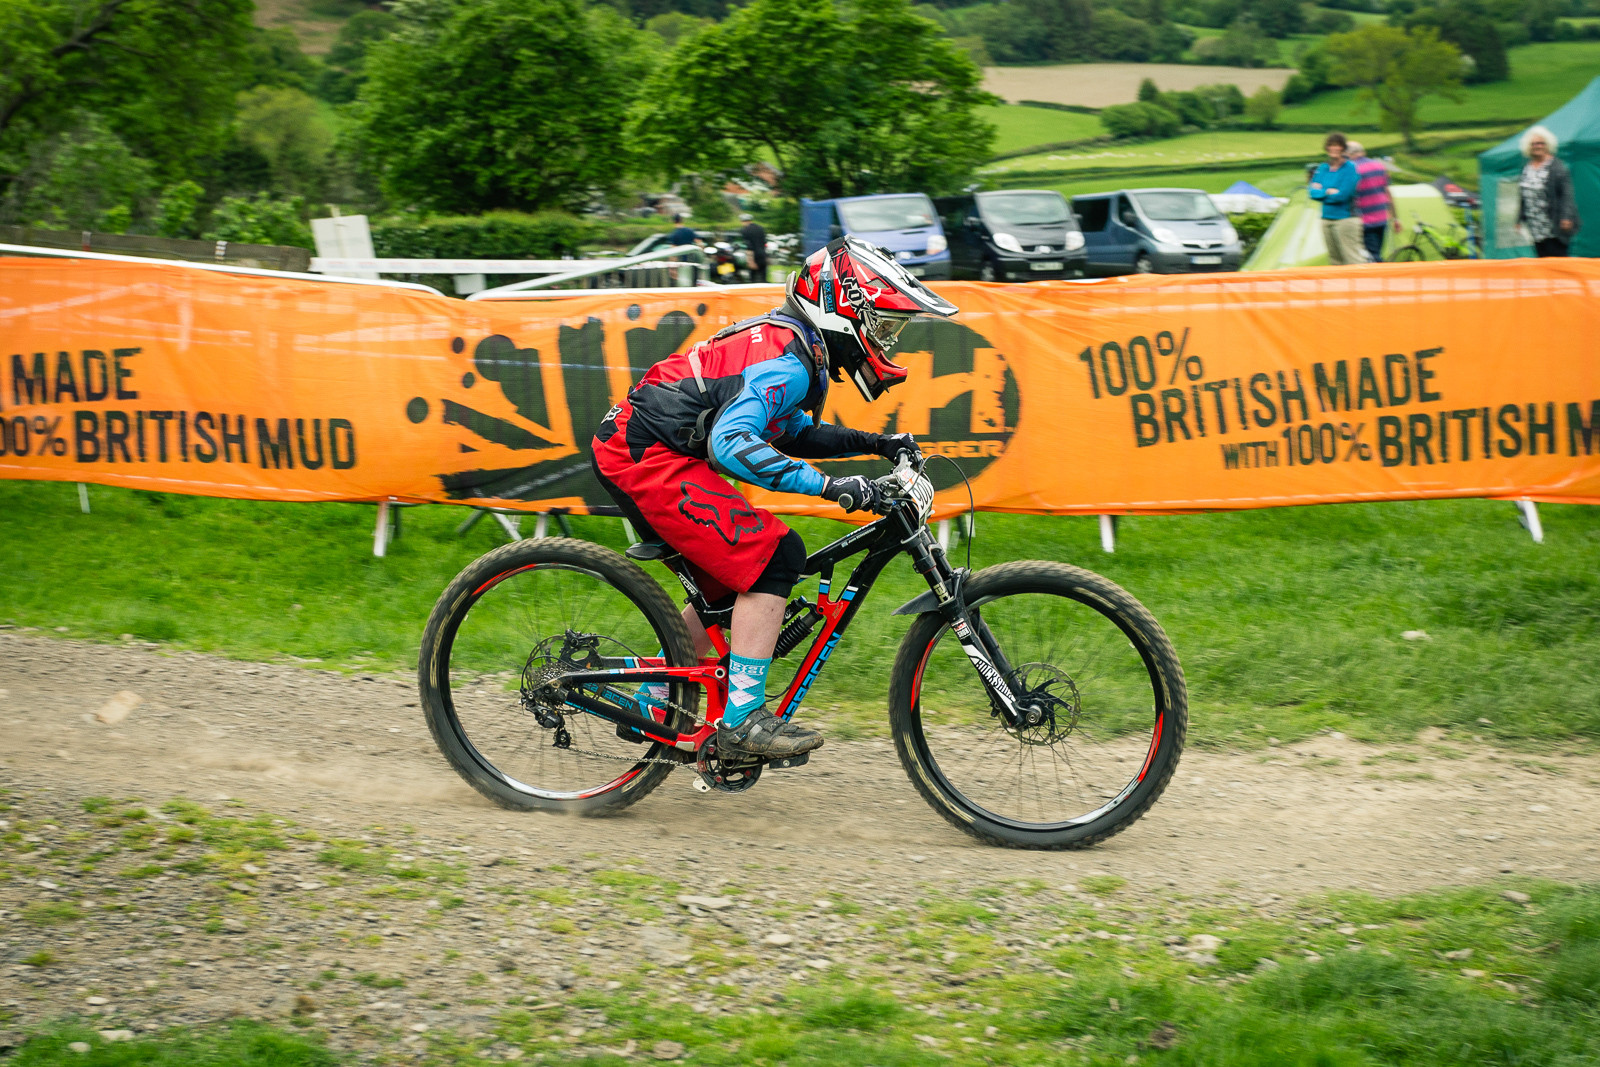 Saracen Myst G-ed Out at Llangollen - G-Out Project - Llangollen BDS 2015 - Mountain Biking Pictures - Vital MTB